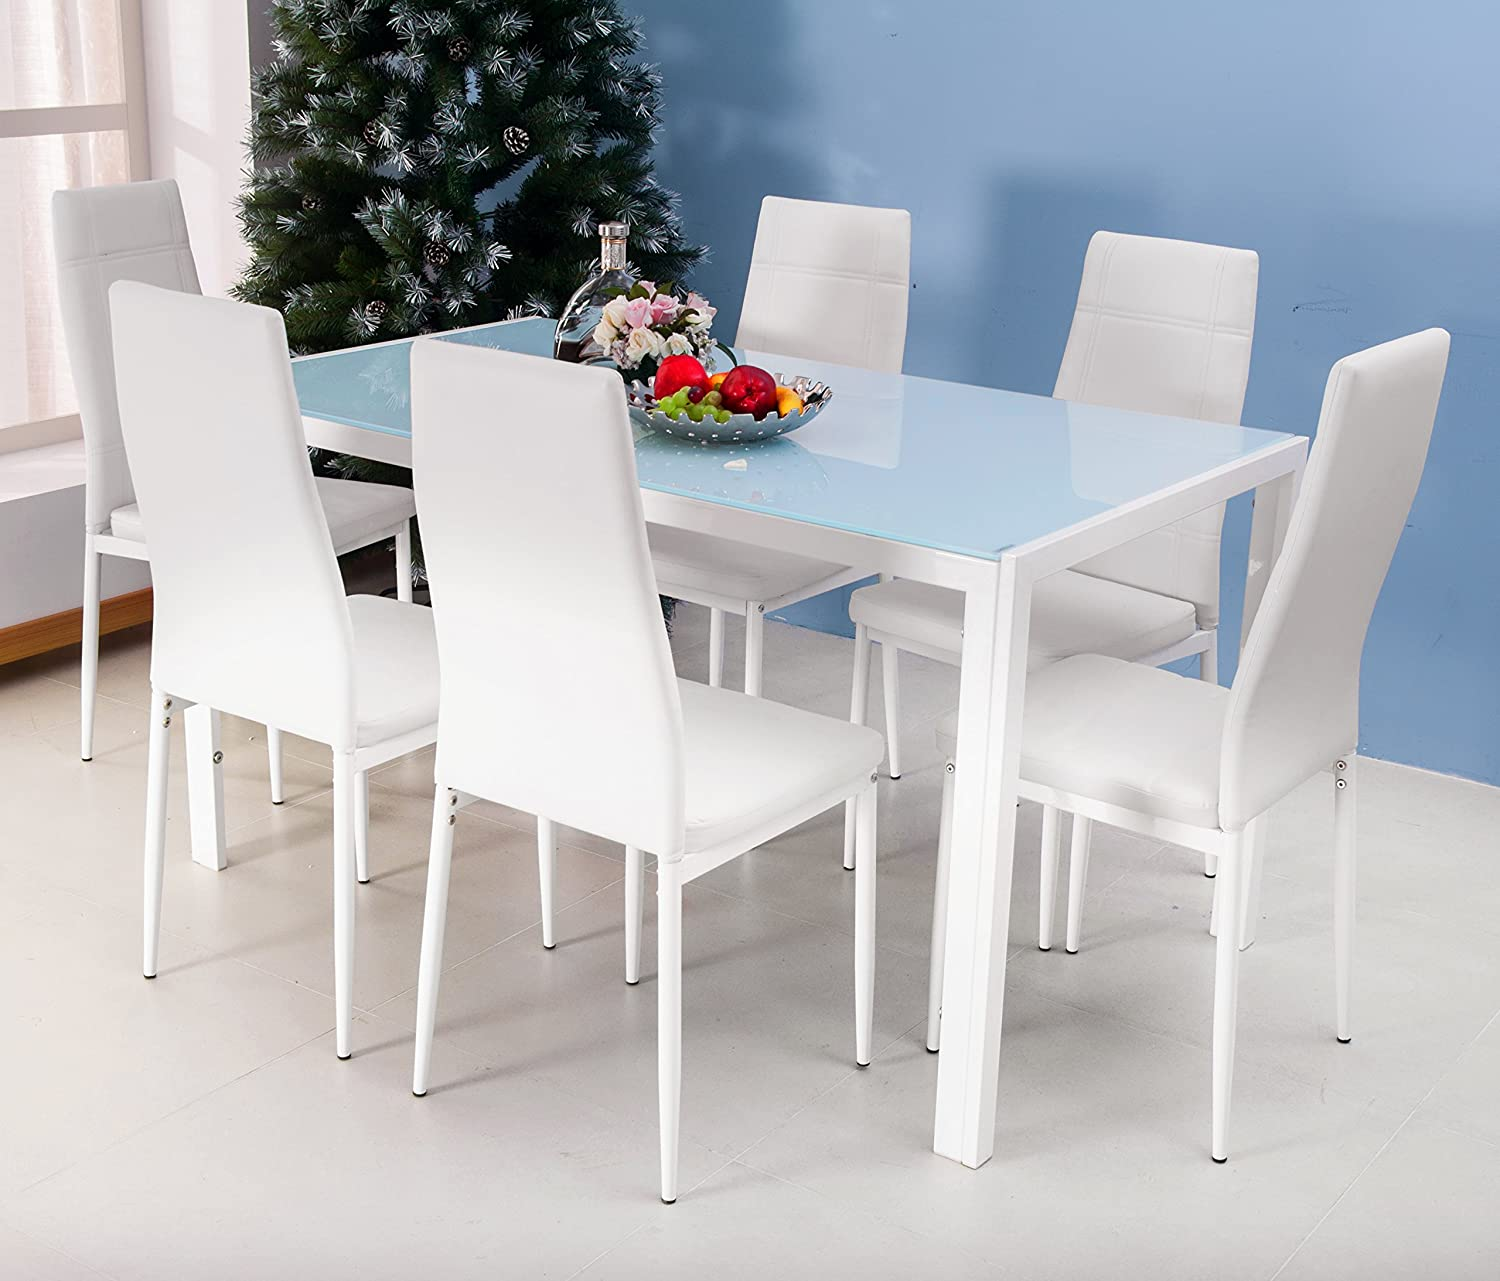 Amazon.com - Merax 7PC Glass Top Dining Set 6 Person Dining Table ...